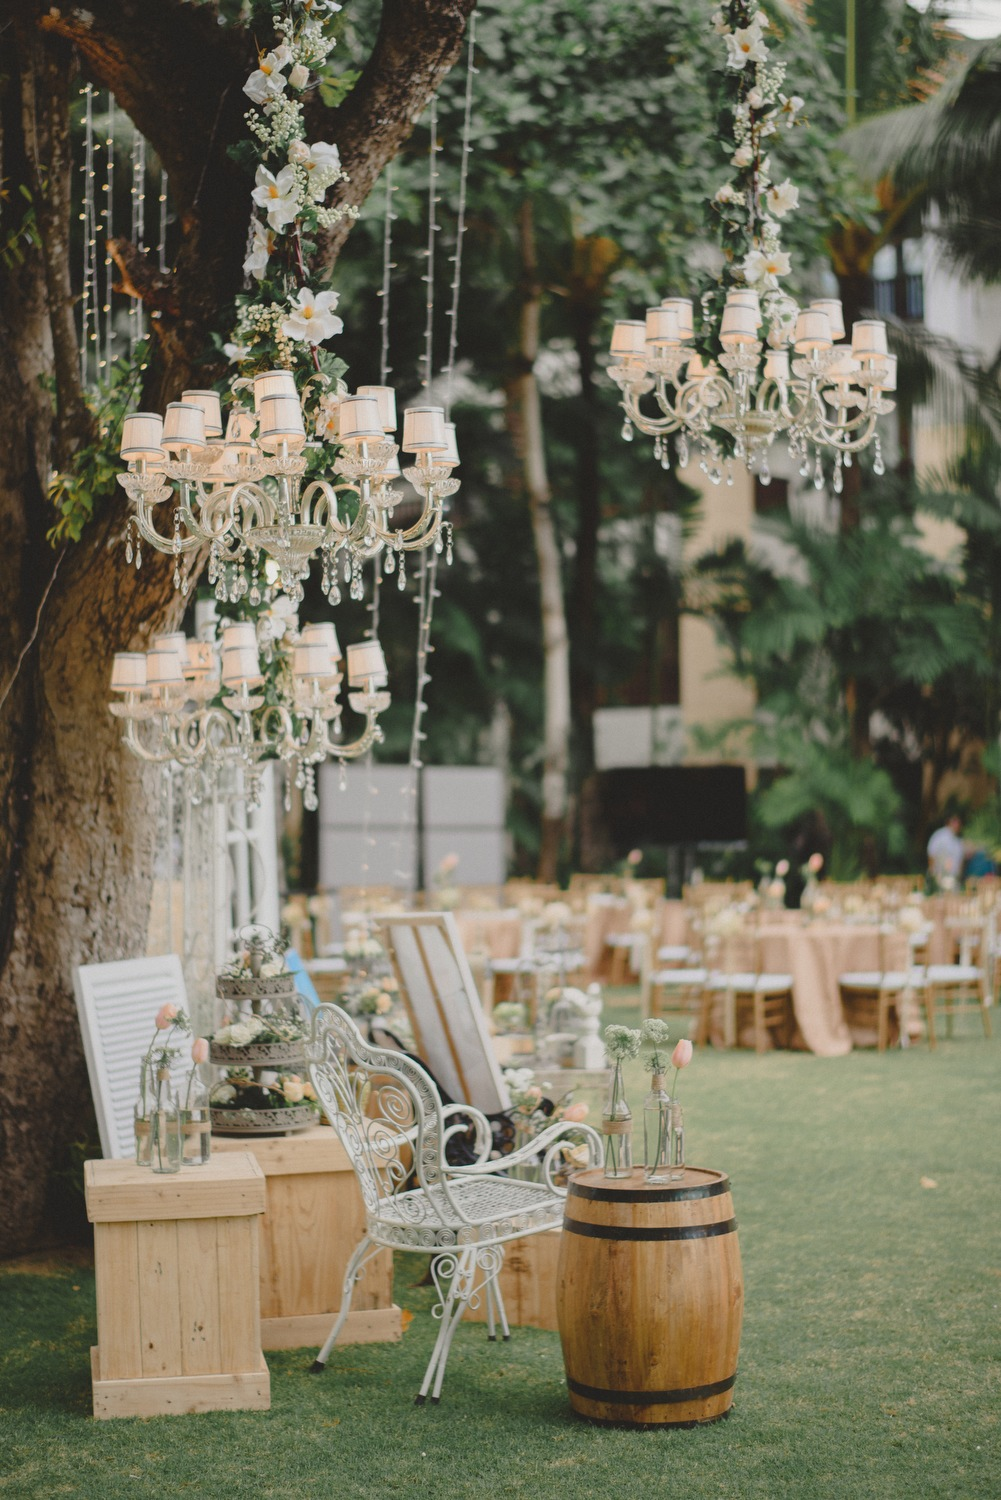 ditho and carolina vintage rustic wedding by terralogical